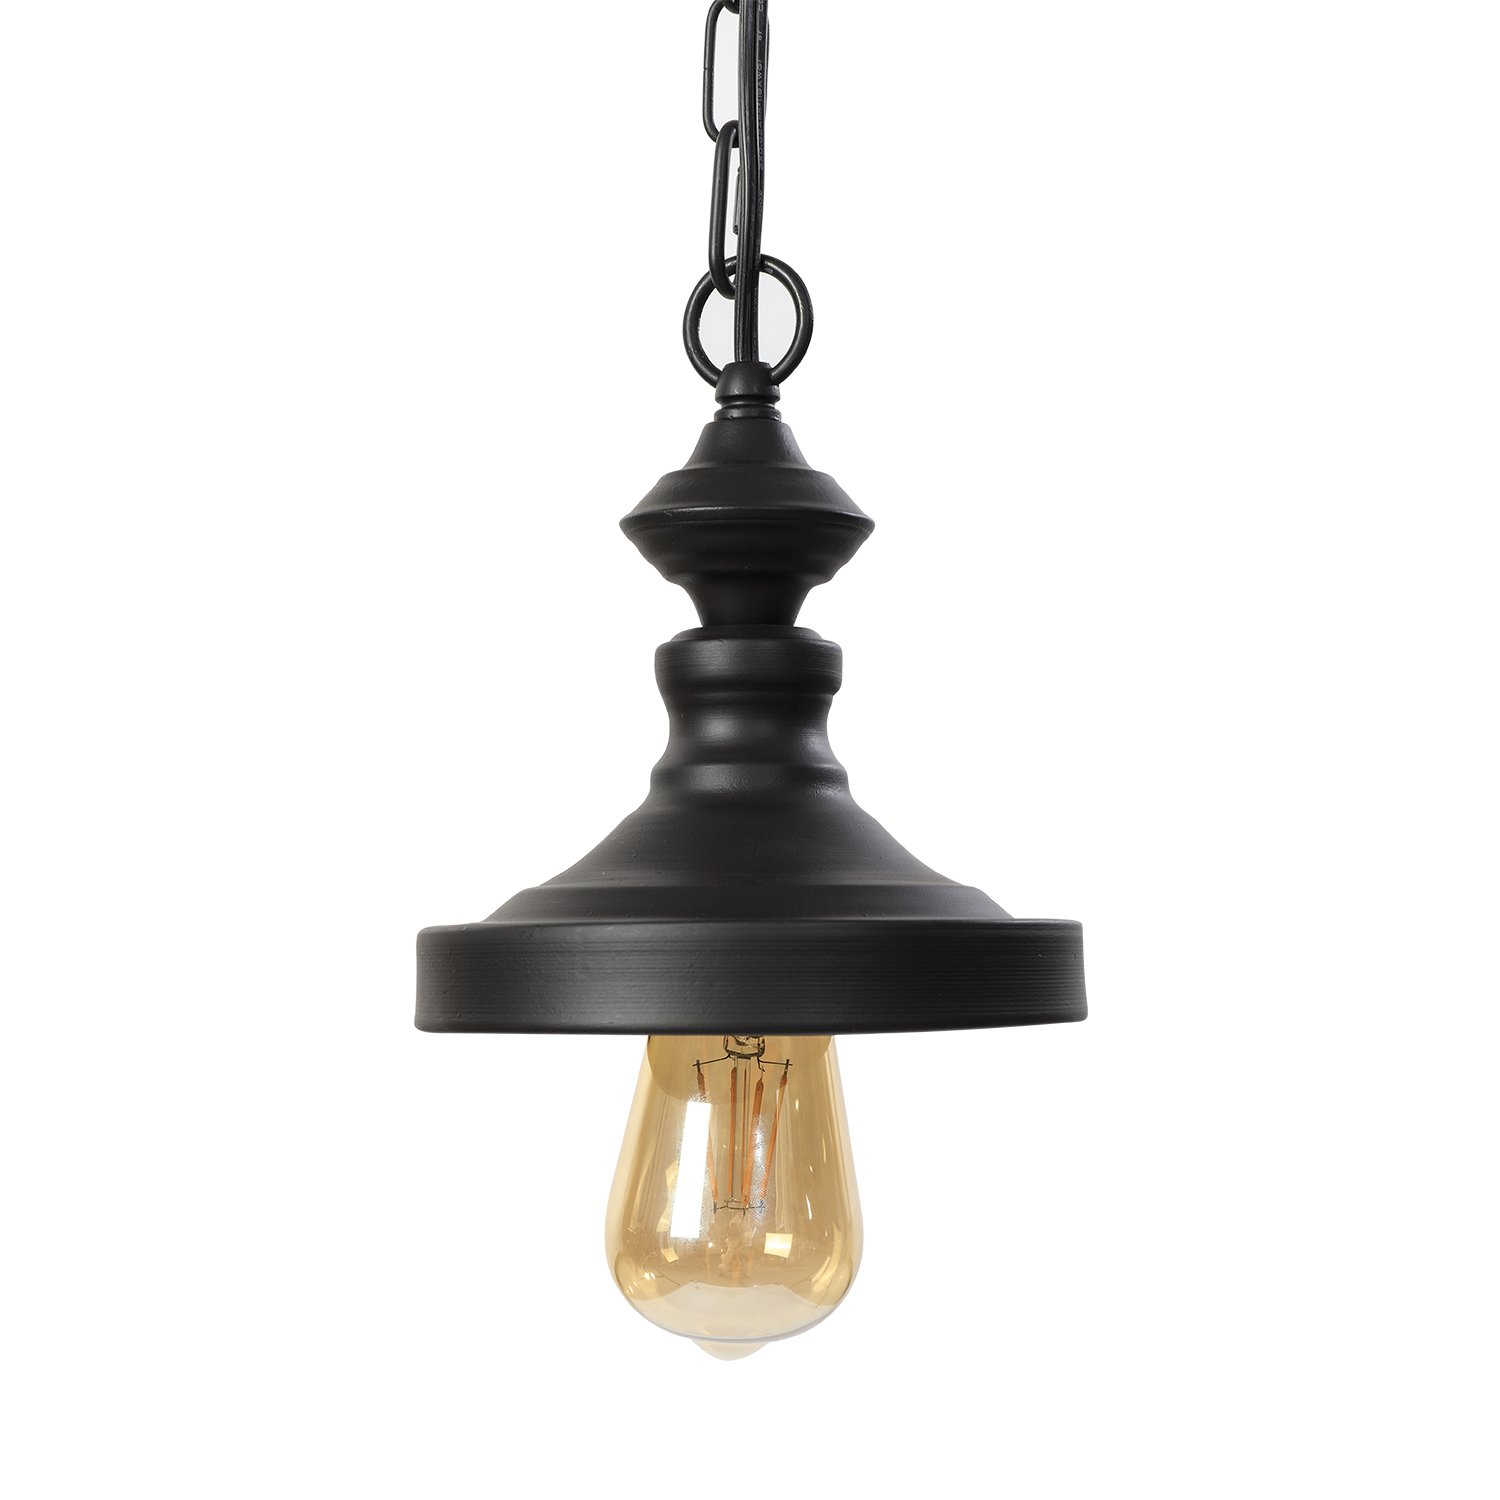 Lit path pendant light hanging lantern lighting fixture for kitchen and dining room e26 e27 medium base metal construction with bronze finish